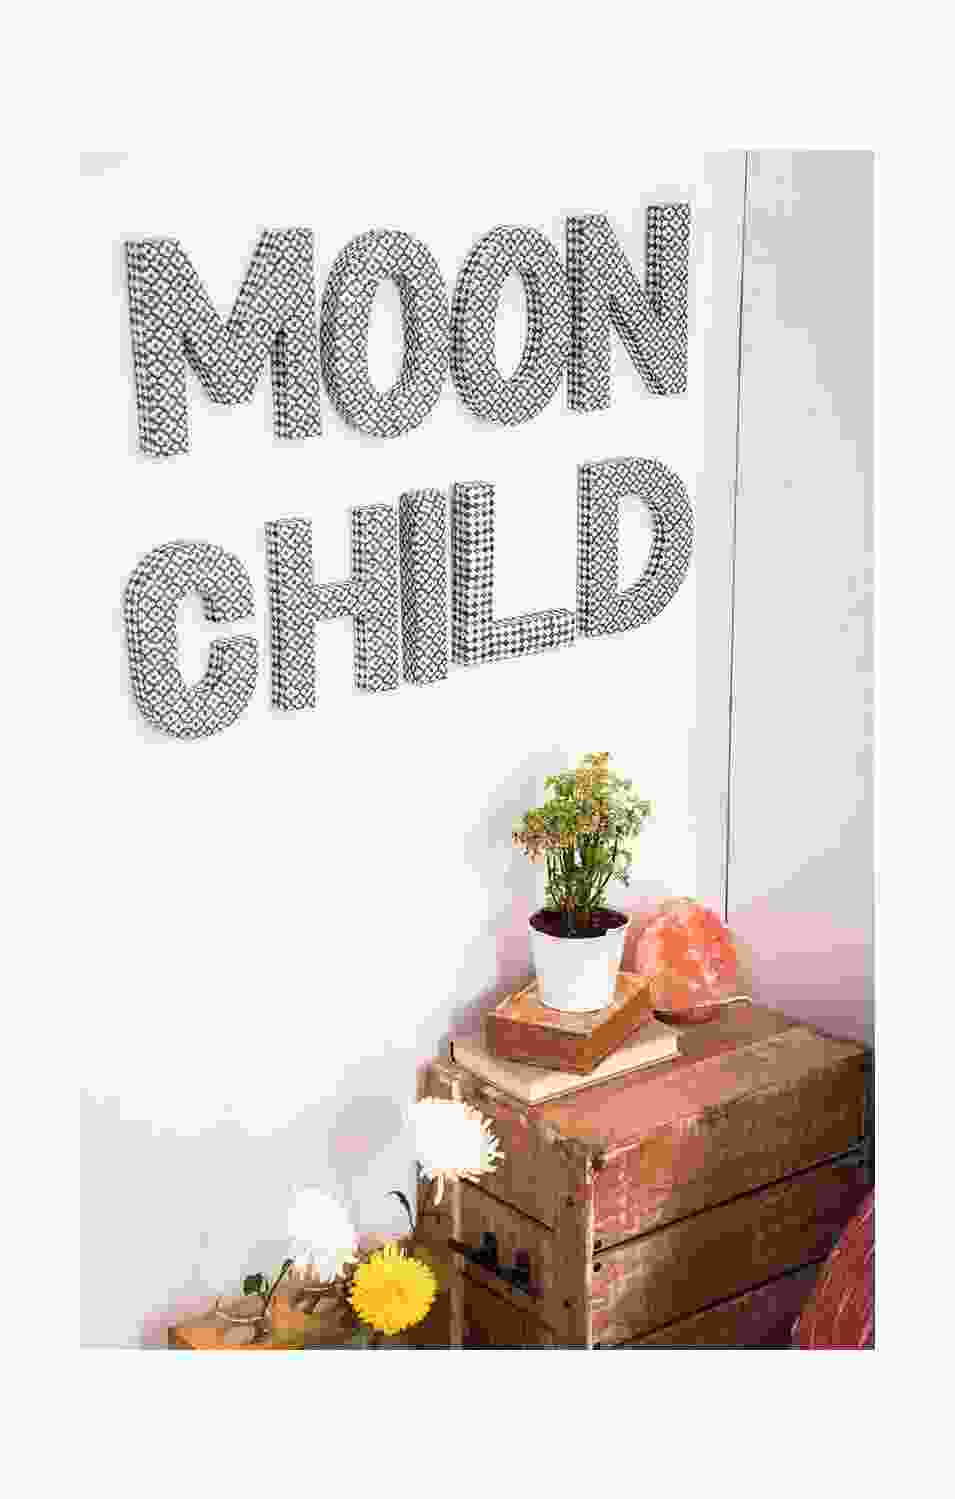 Moon Child Alphabet Wall Art